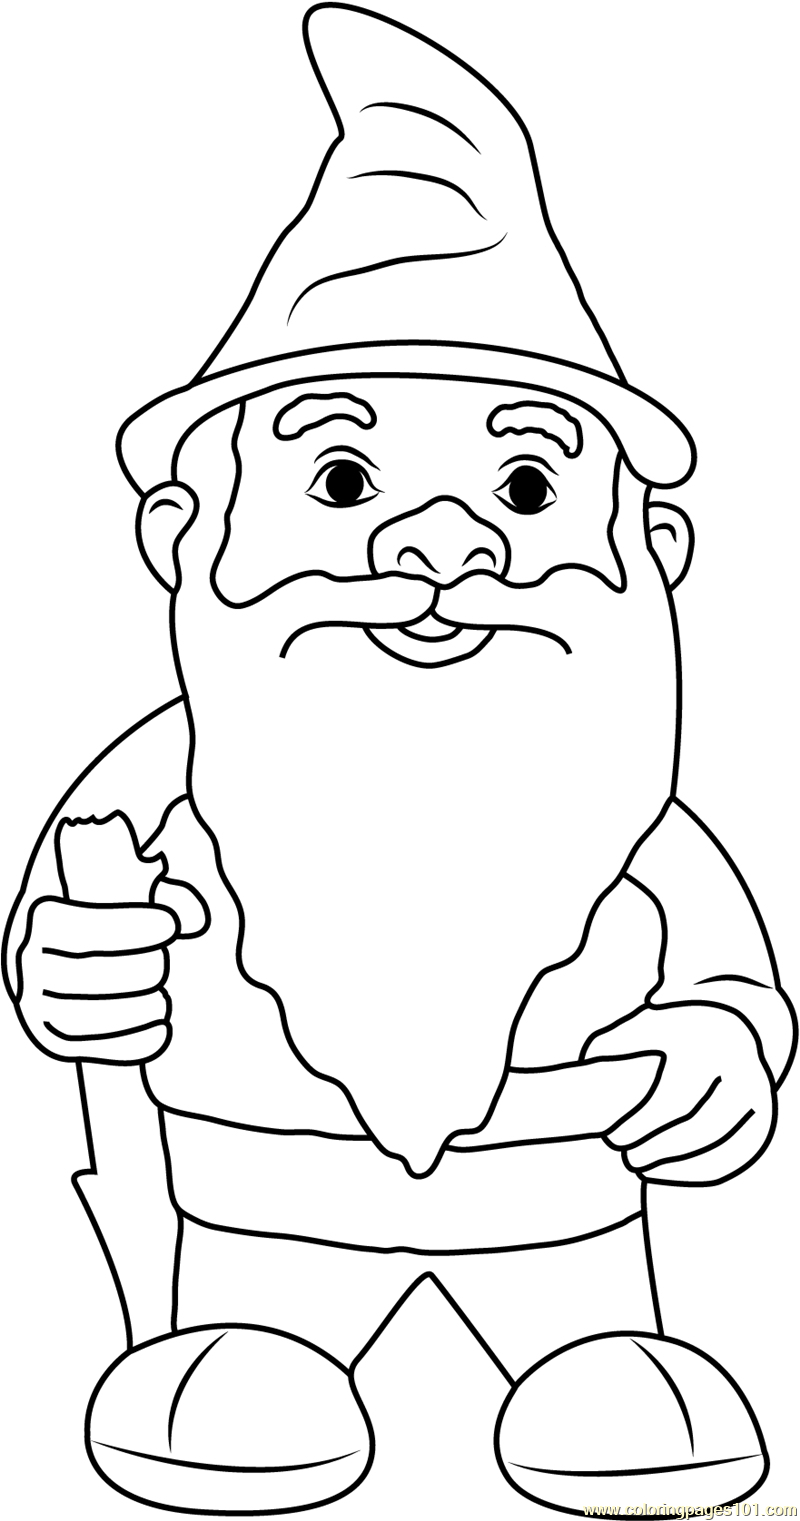 garden gnome with fluffy beard coloring page free gnomeo